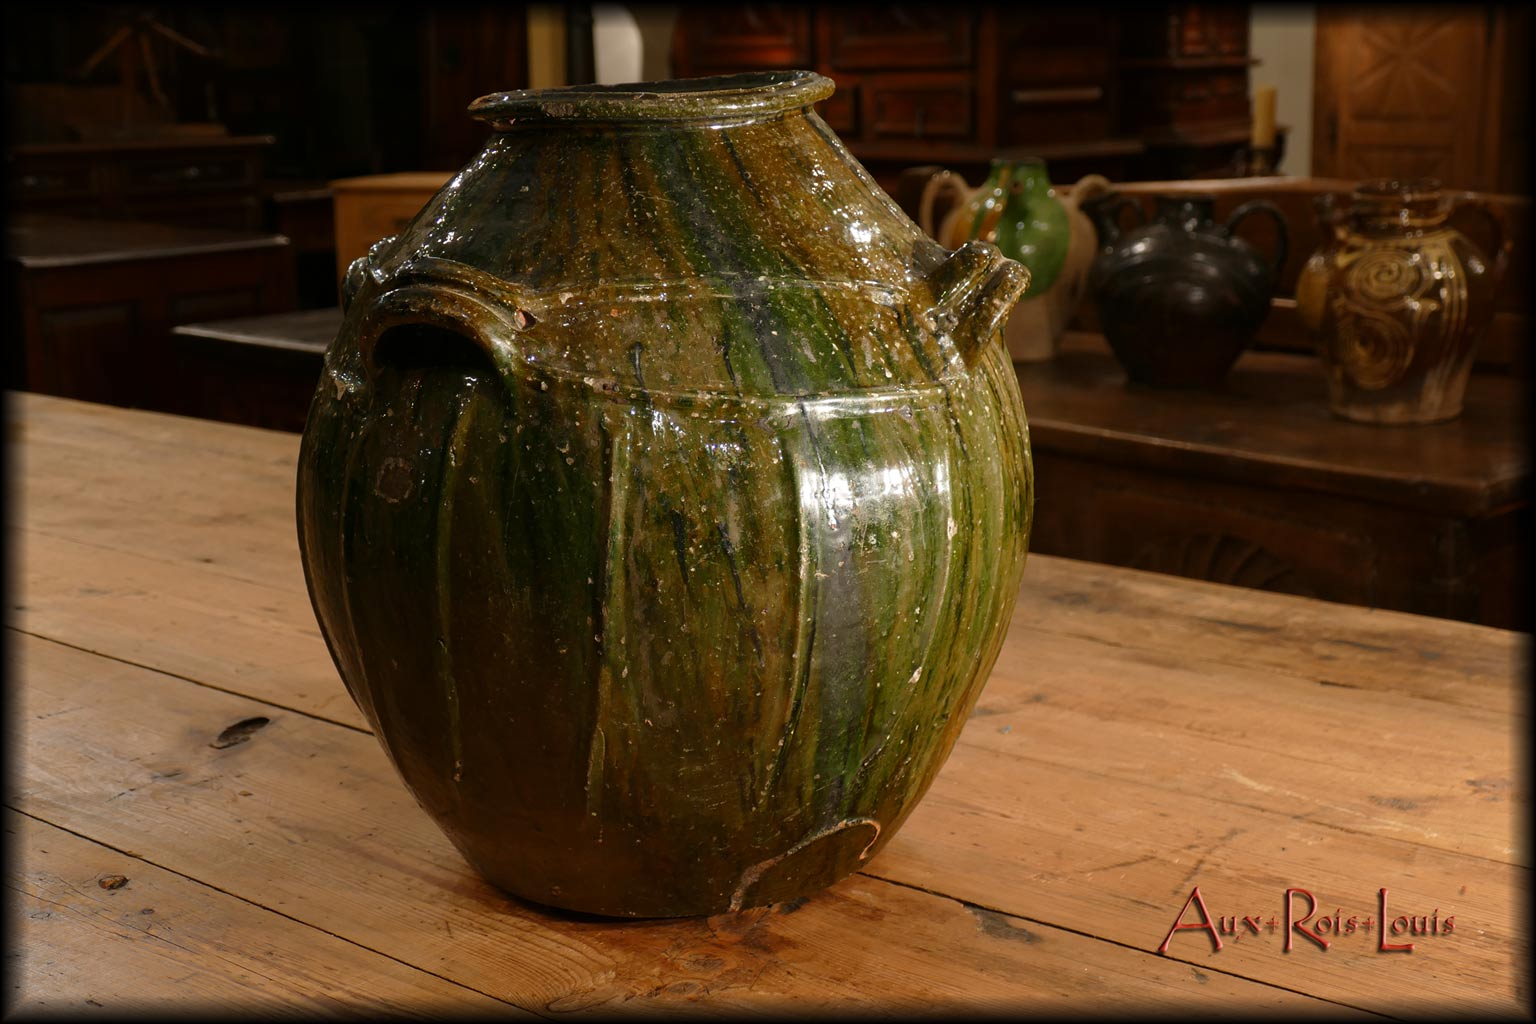 The lead varnish has remained intact and brings out the exquisite green tinted glaze.